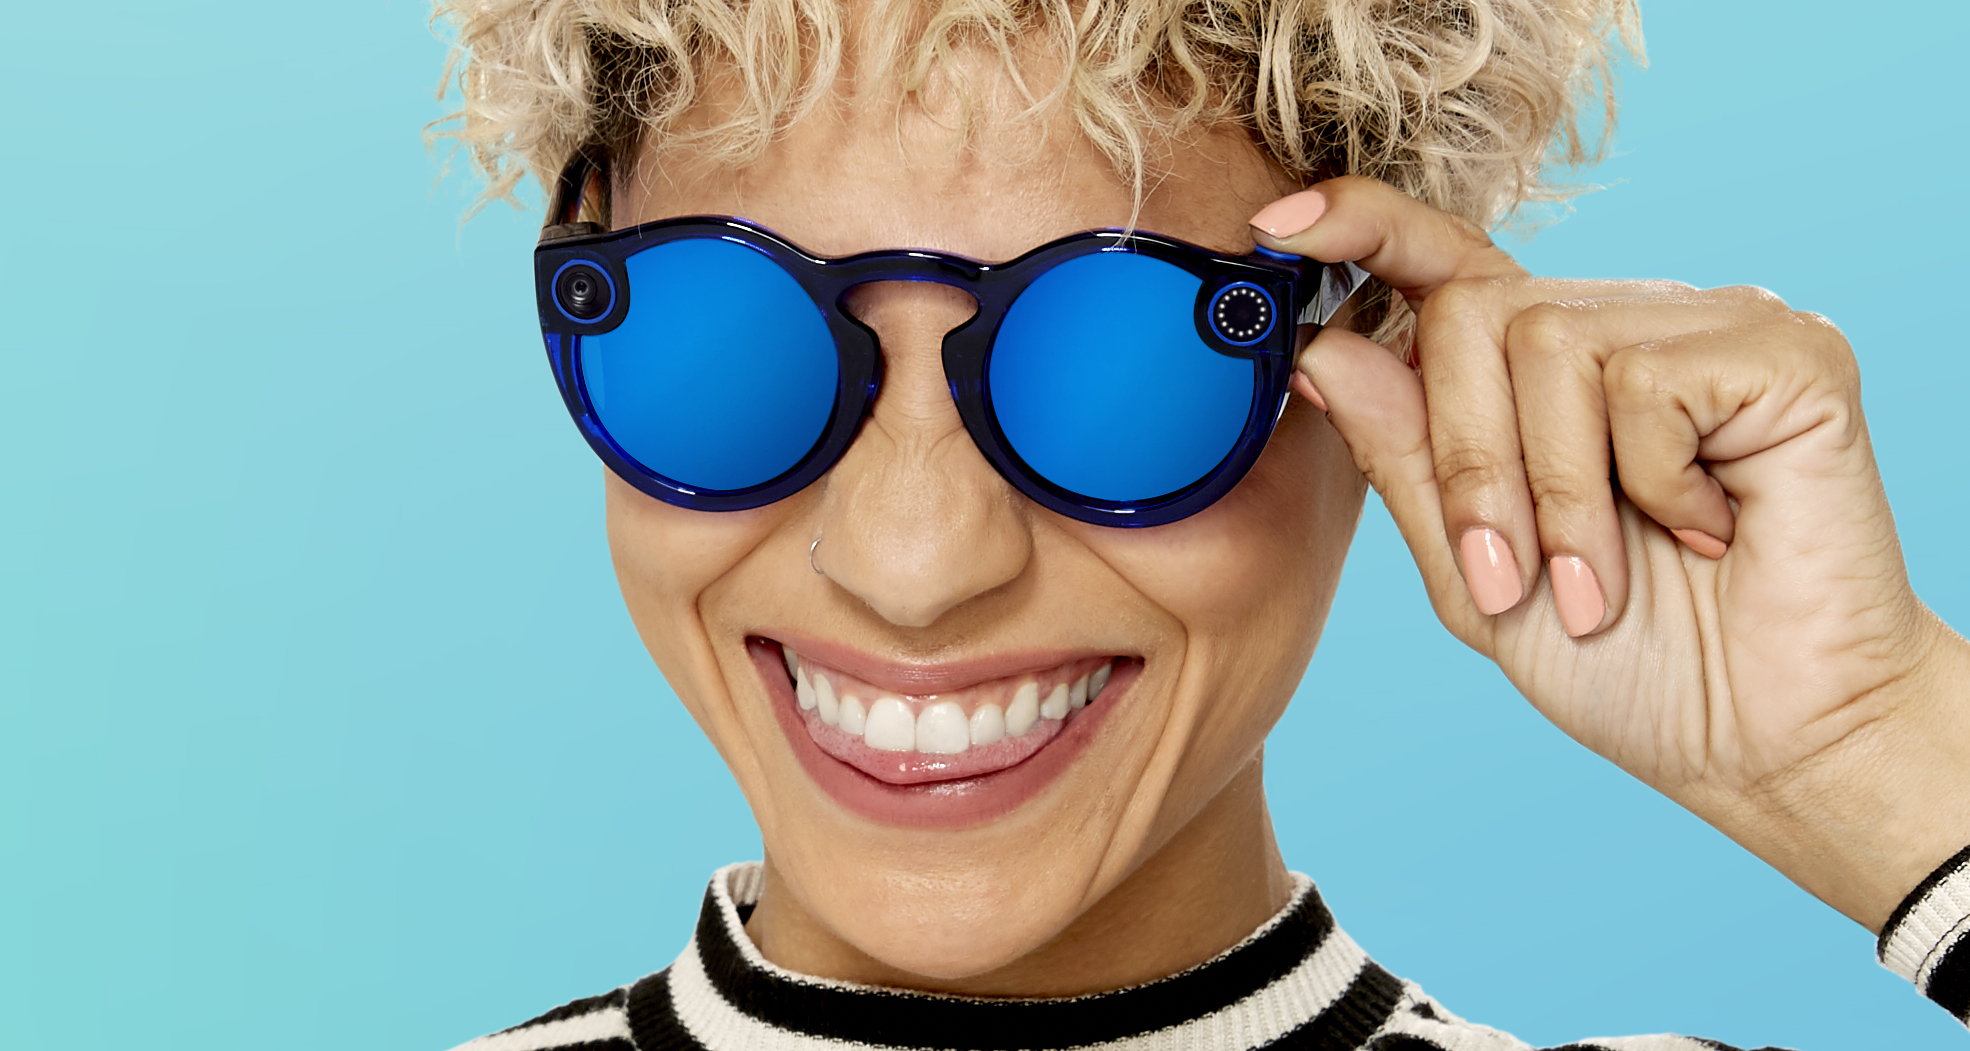 Snap jumps after announcing its new and improved Spectacles